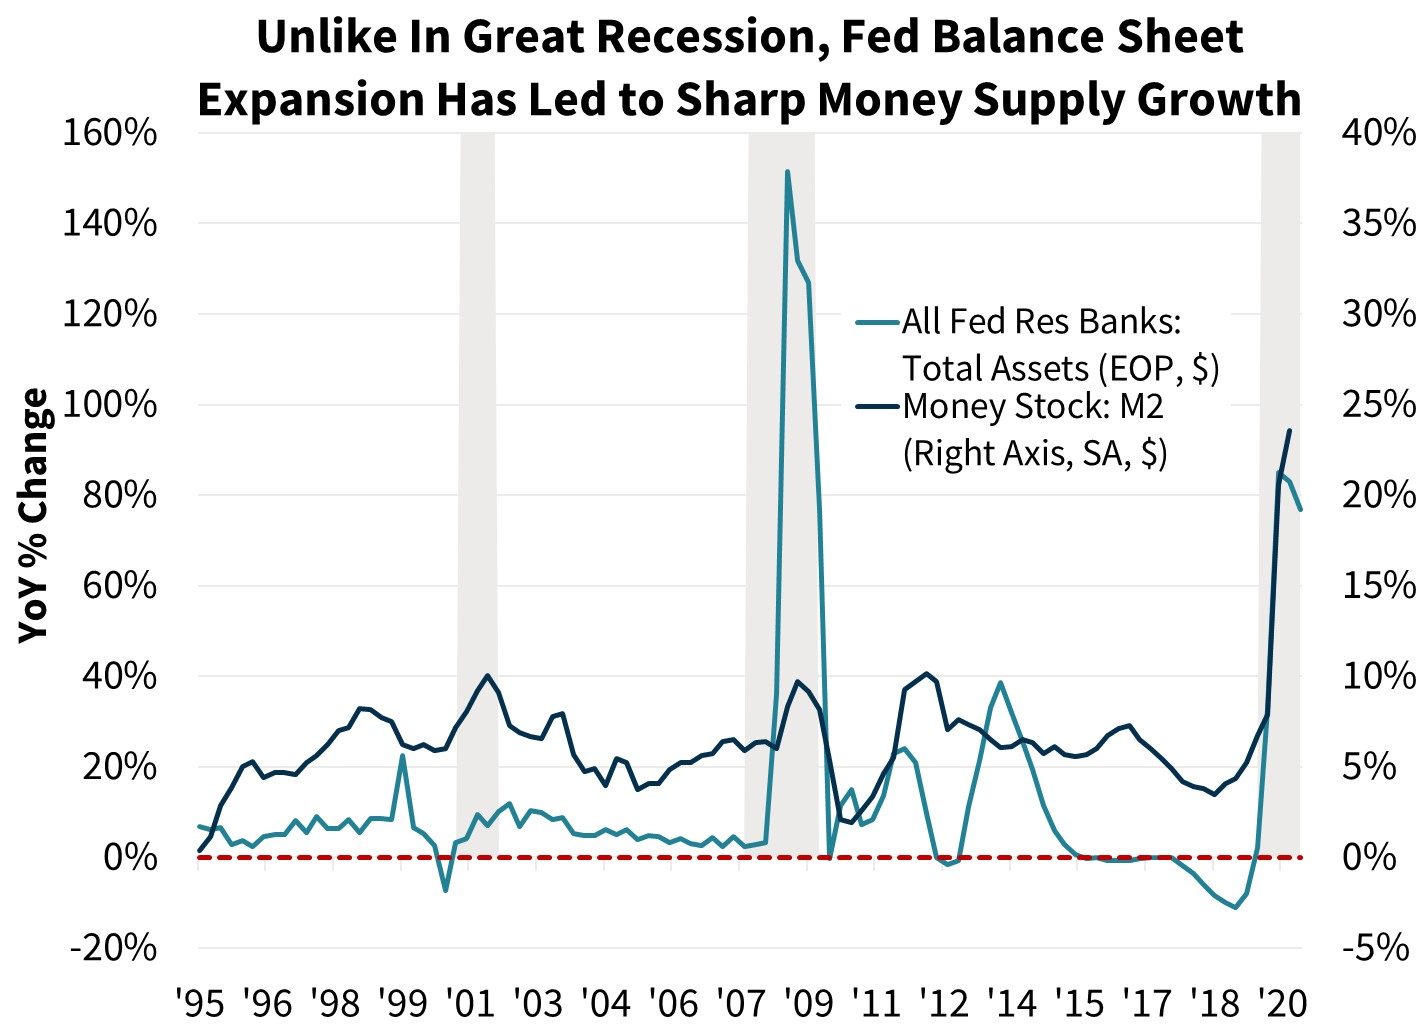 Unlike In Great Recession, Fed Balance Sheet Expansion Has led to Sharp Money Supply Growth